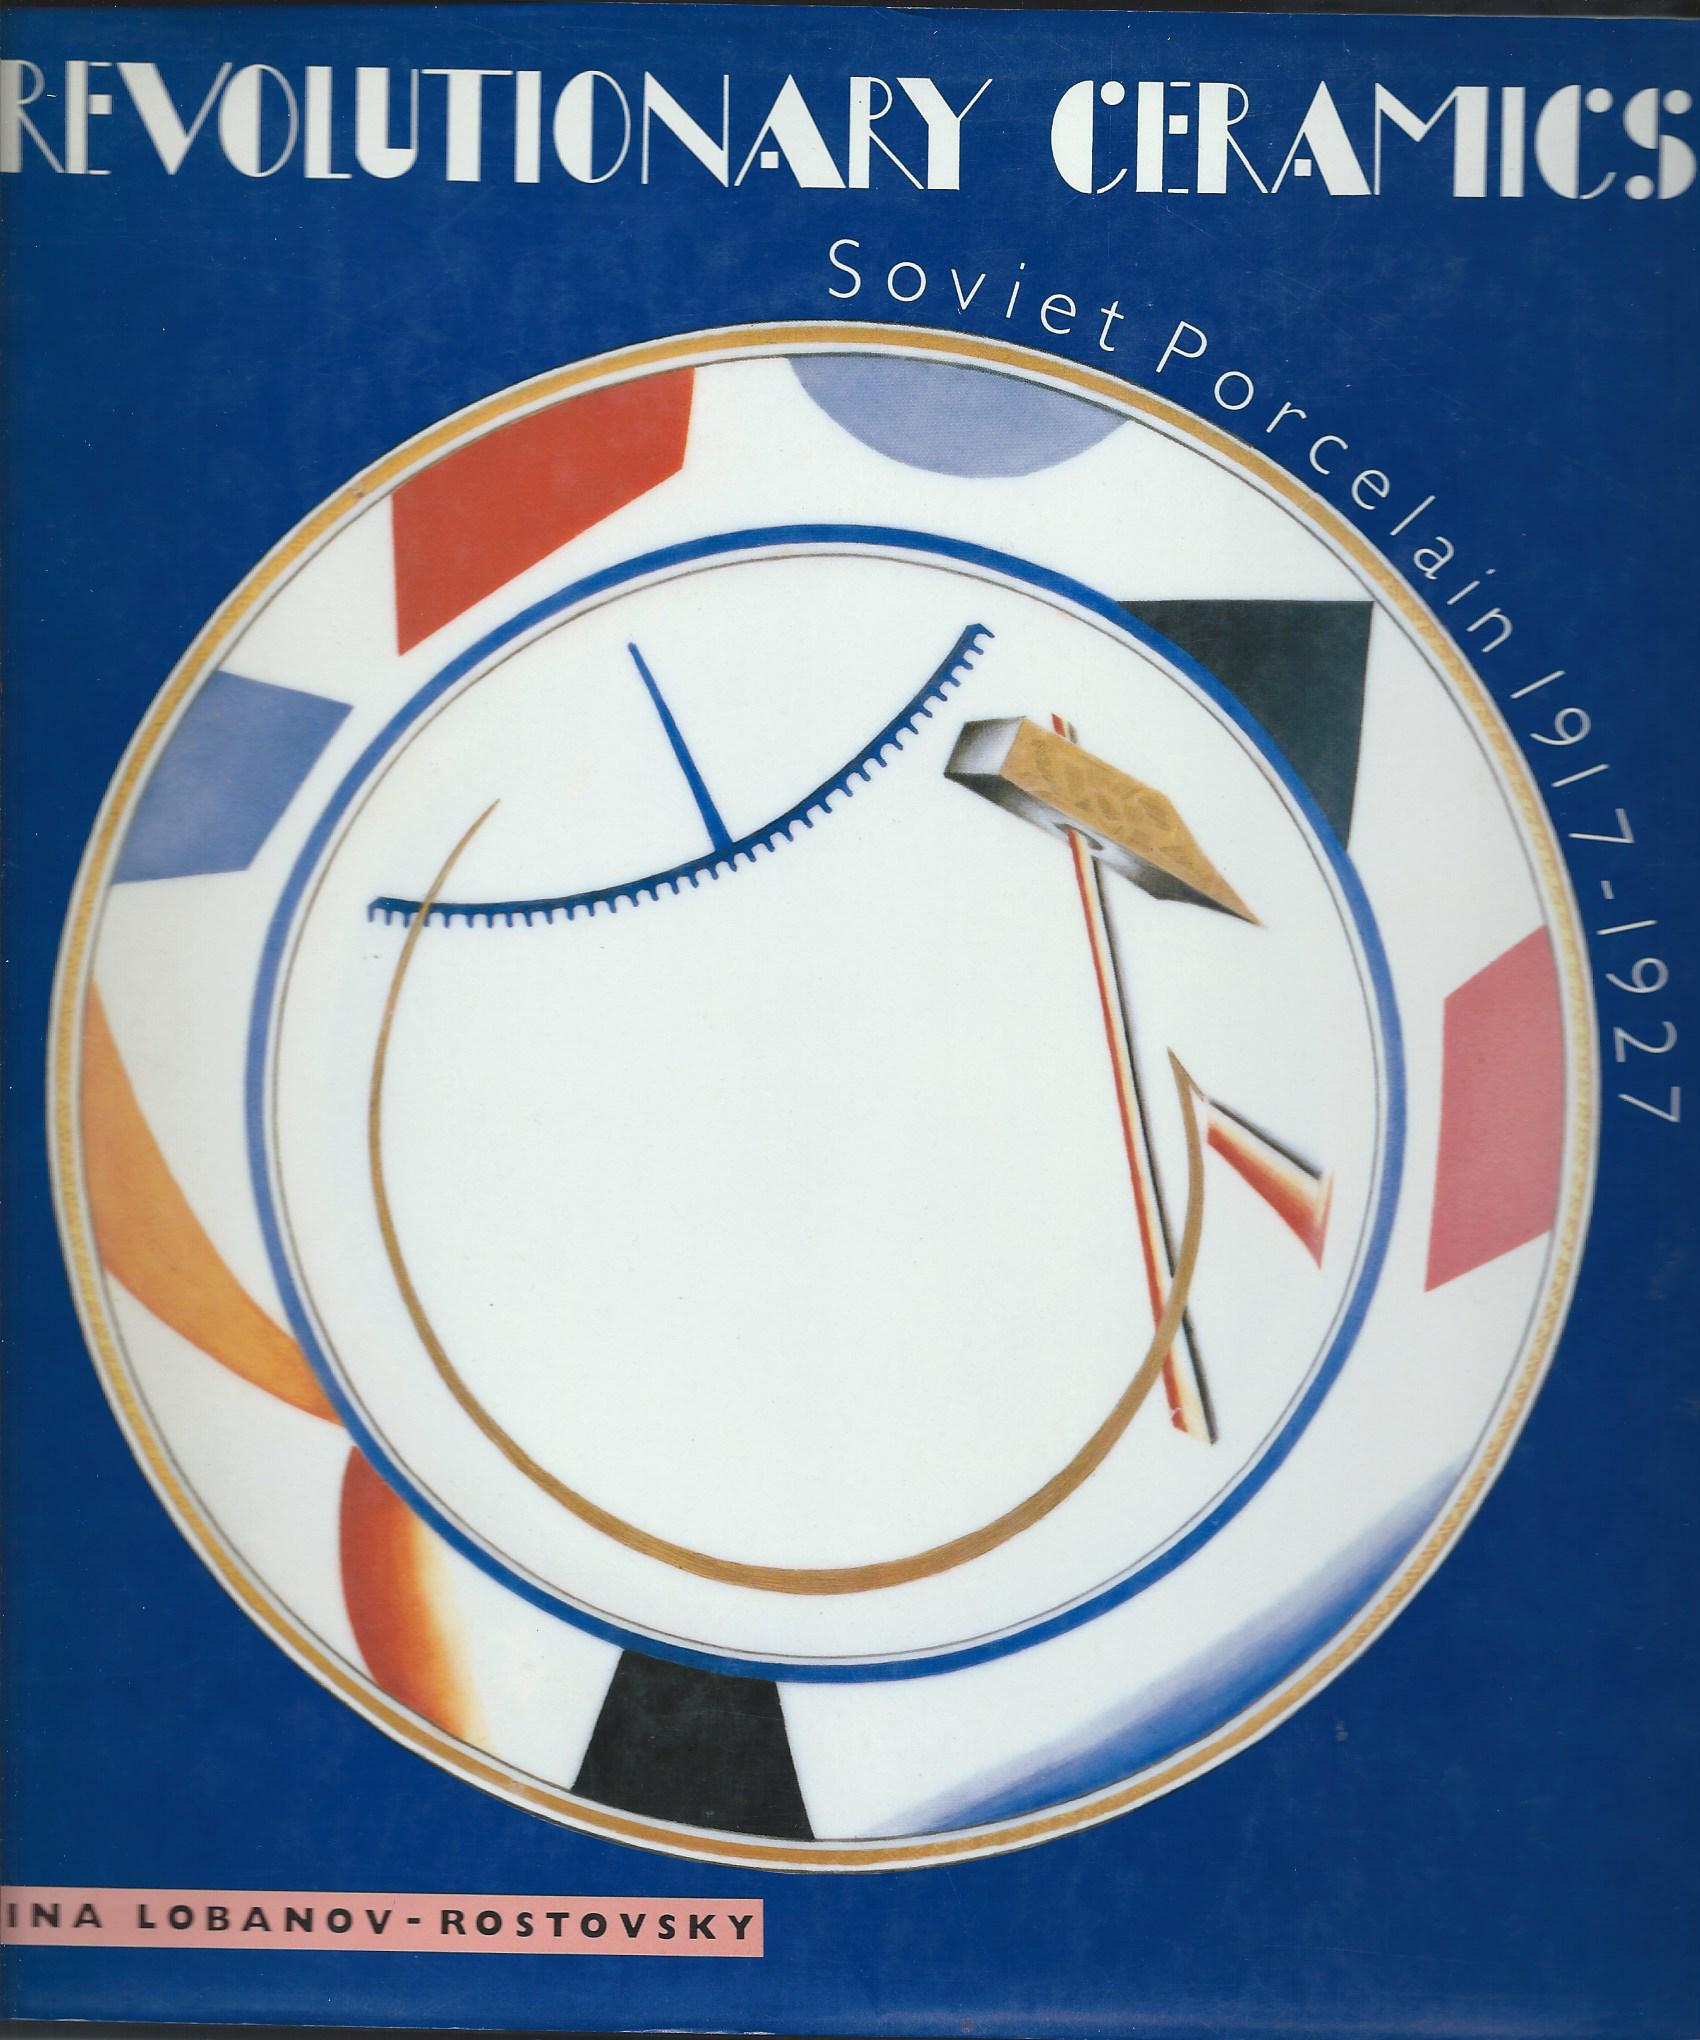 Image for Soviet Porcelain 1917-1927; REVOLUTIONARY CERAMICS